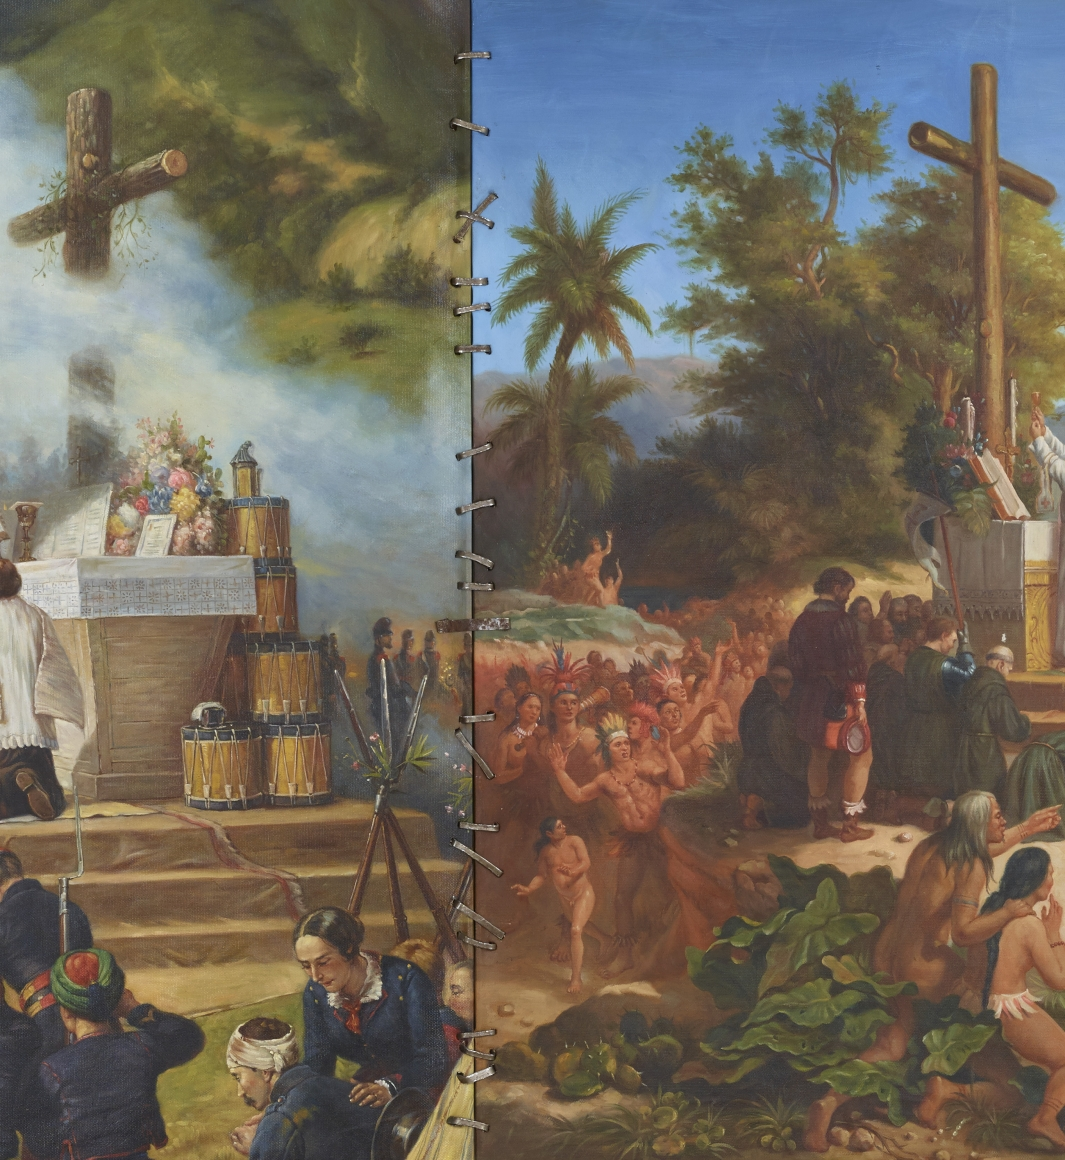 卡德·é˜¿æäºž Colonial Modernity: the first mass in Brazil and Algeria (detail), 2014